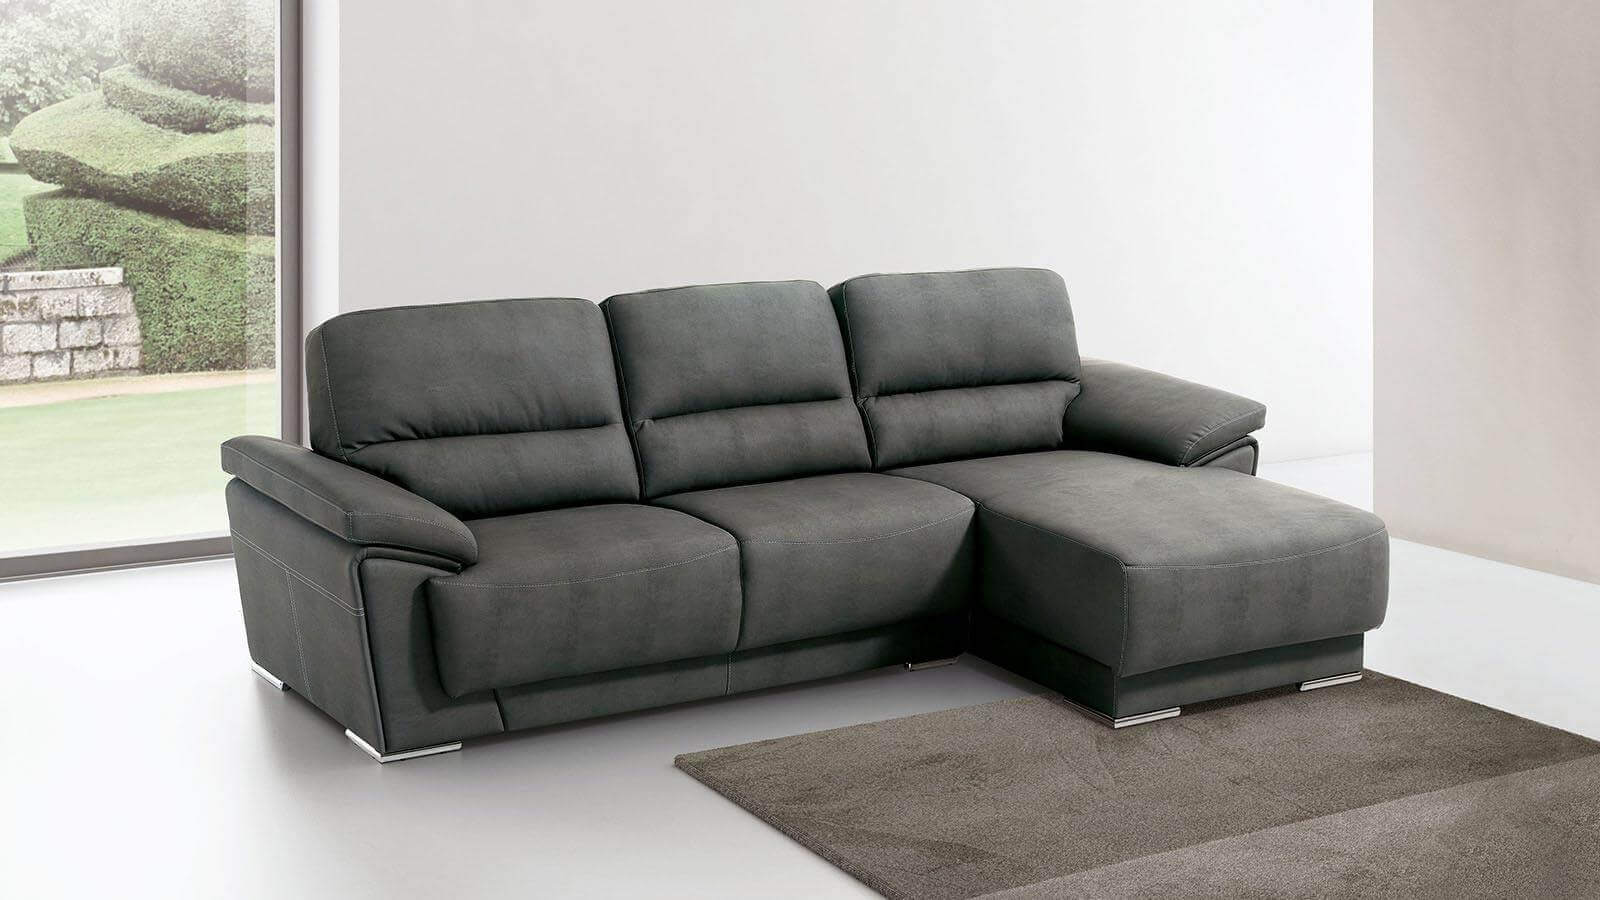 live sofa mveis so jorge mobilirio sofs e colches. Black Bedroom Furniture Sets. Home Design Ideas